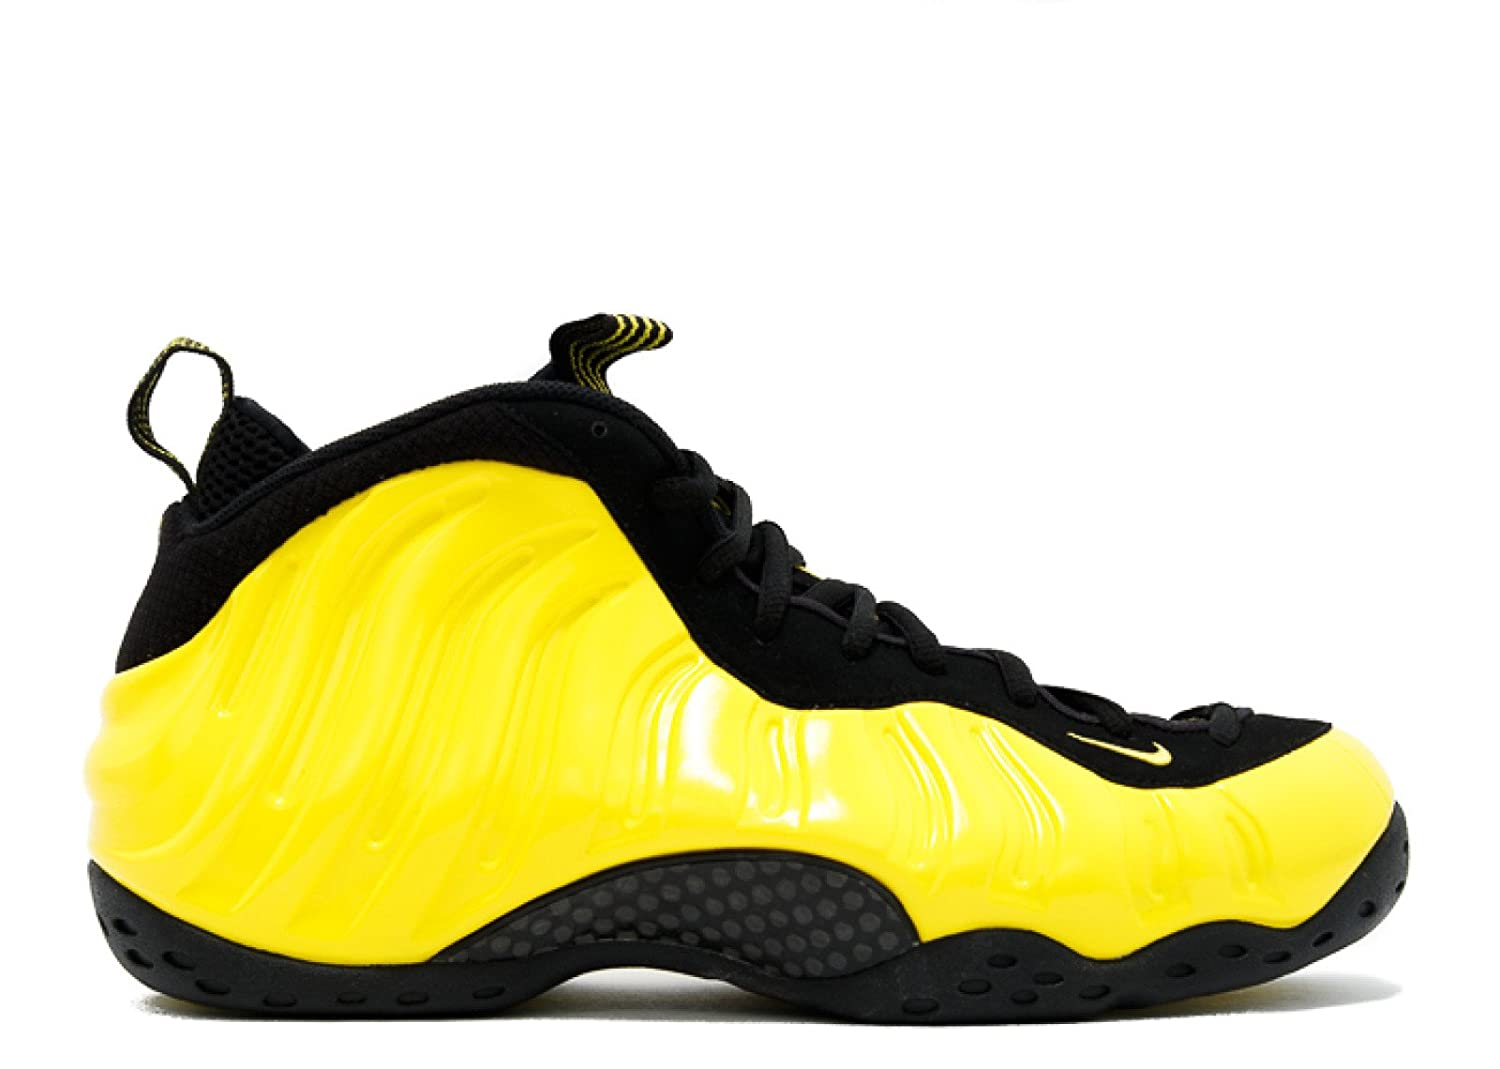 best service ae12c d180c ... low cost nike air foamposite opti zapatillas one zapatillas amarillo de  baloncesto para hombre amarillo opti